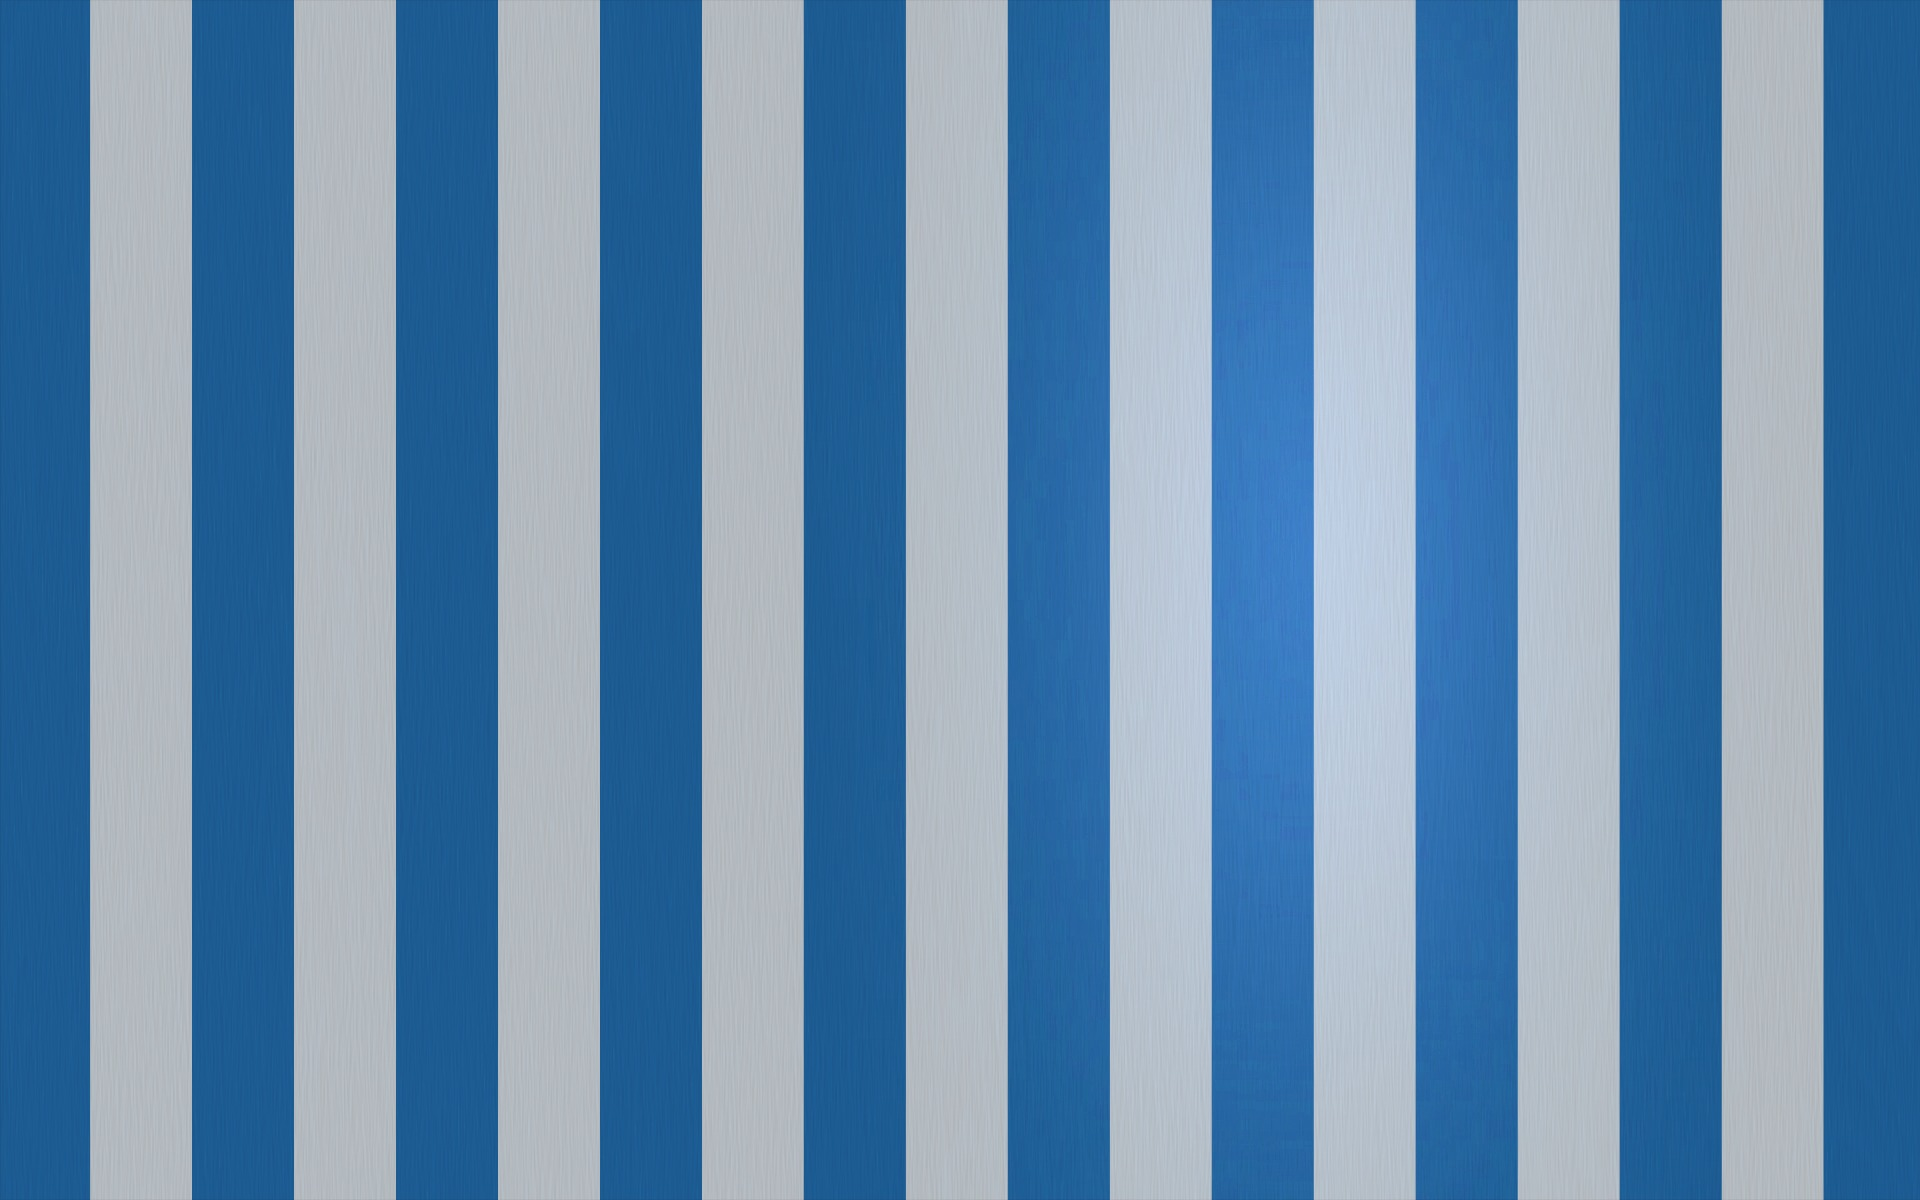 Blue Striped Wallpaper: Blue And White Striped Wallpaper